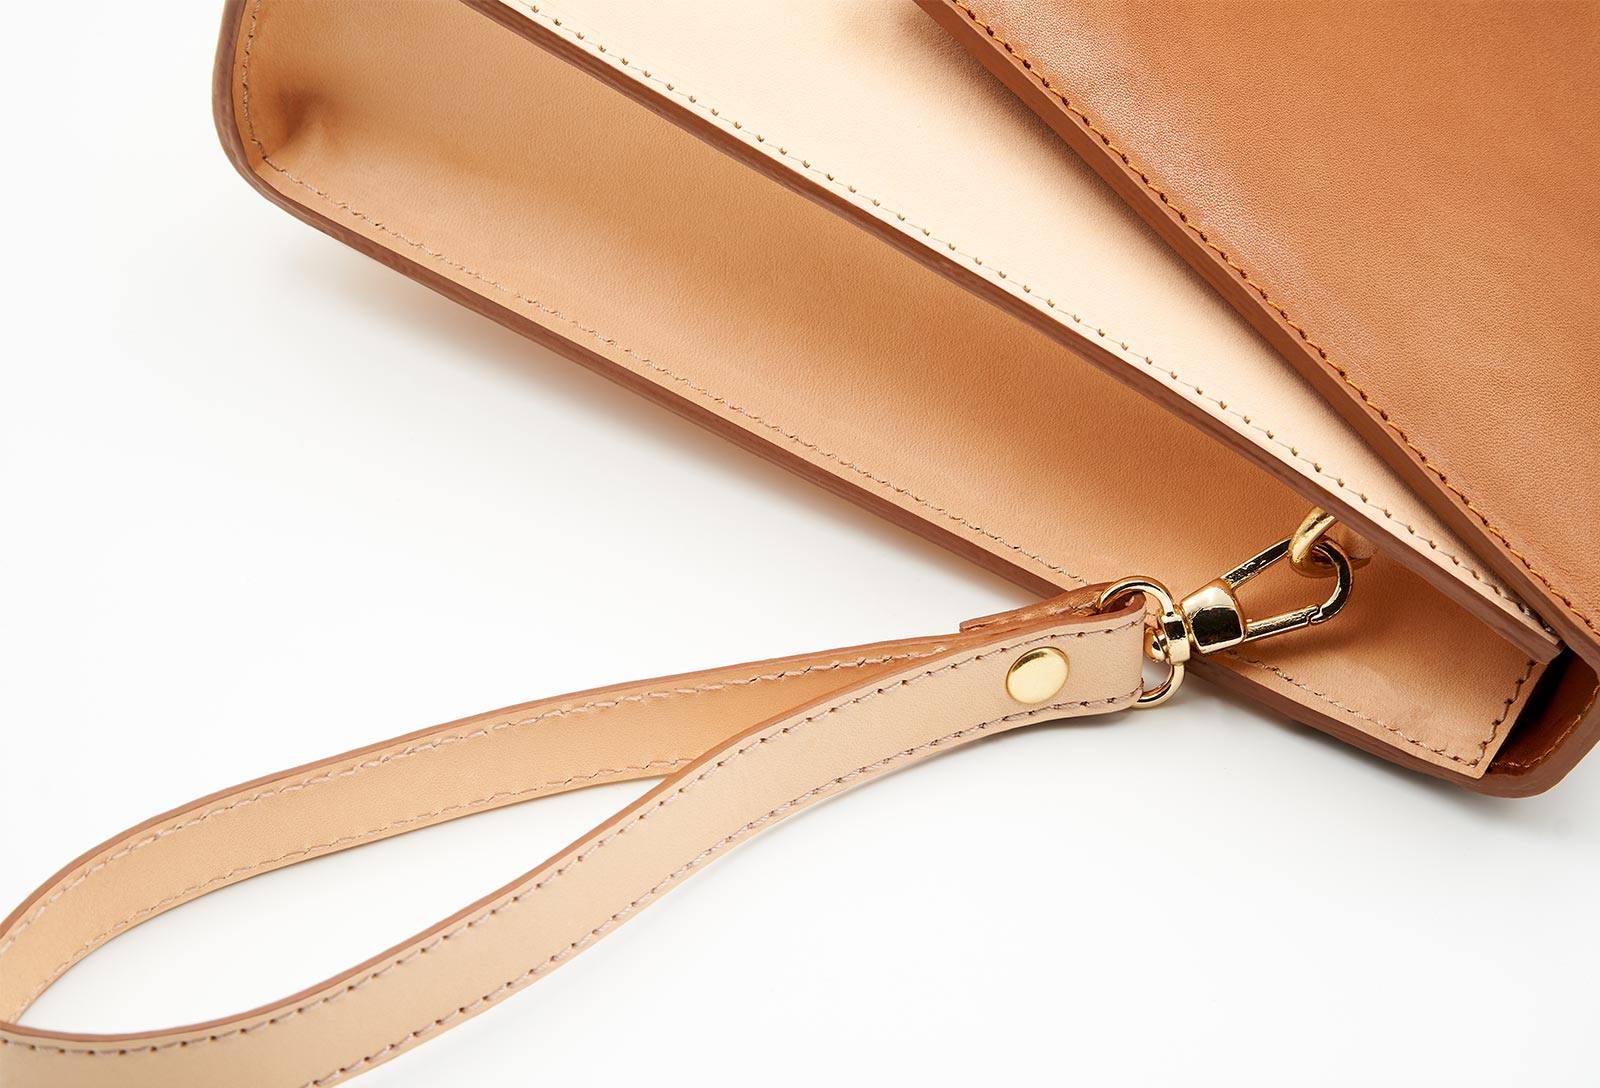 Soofre Vegetable Tanned Leather Clutch Color tan natural